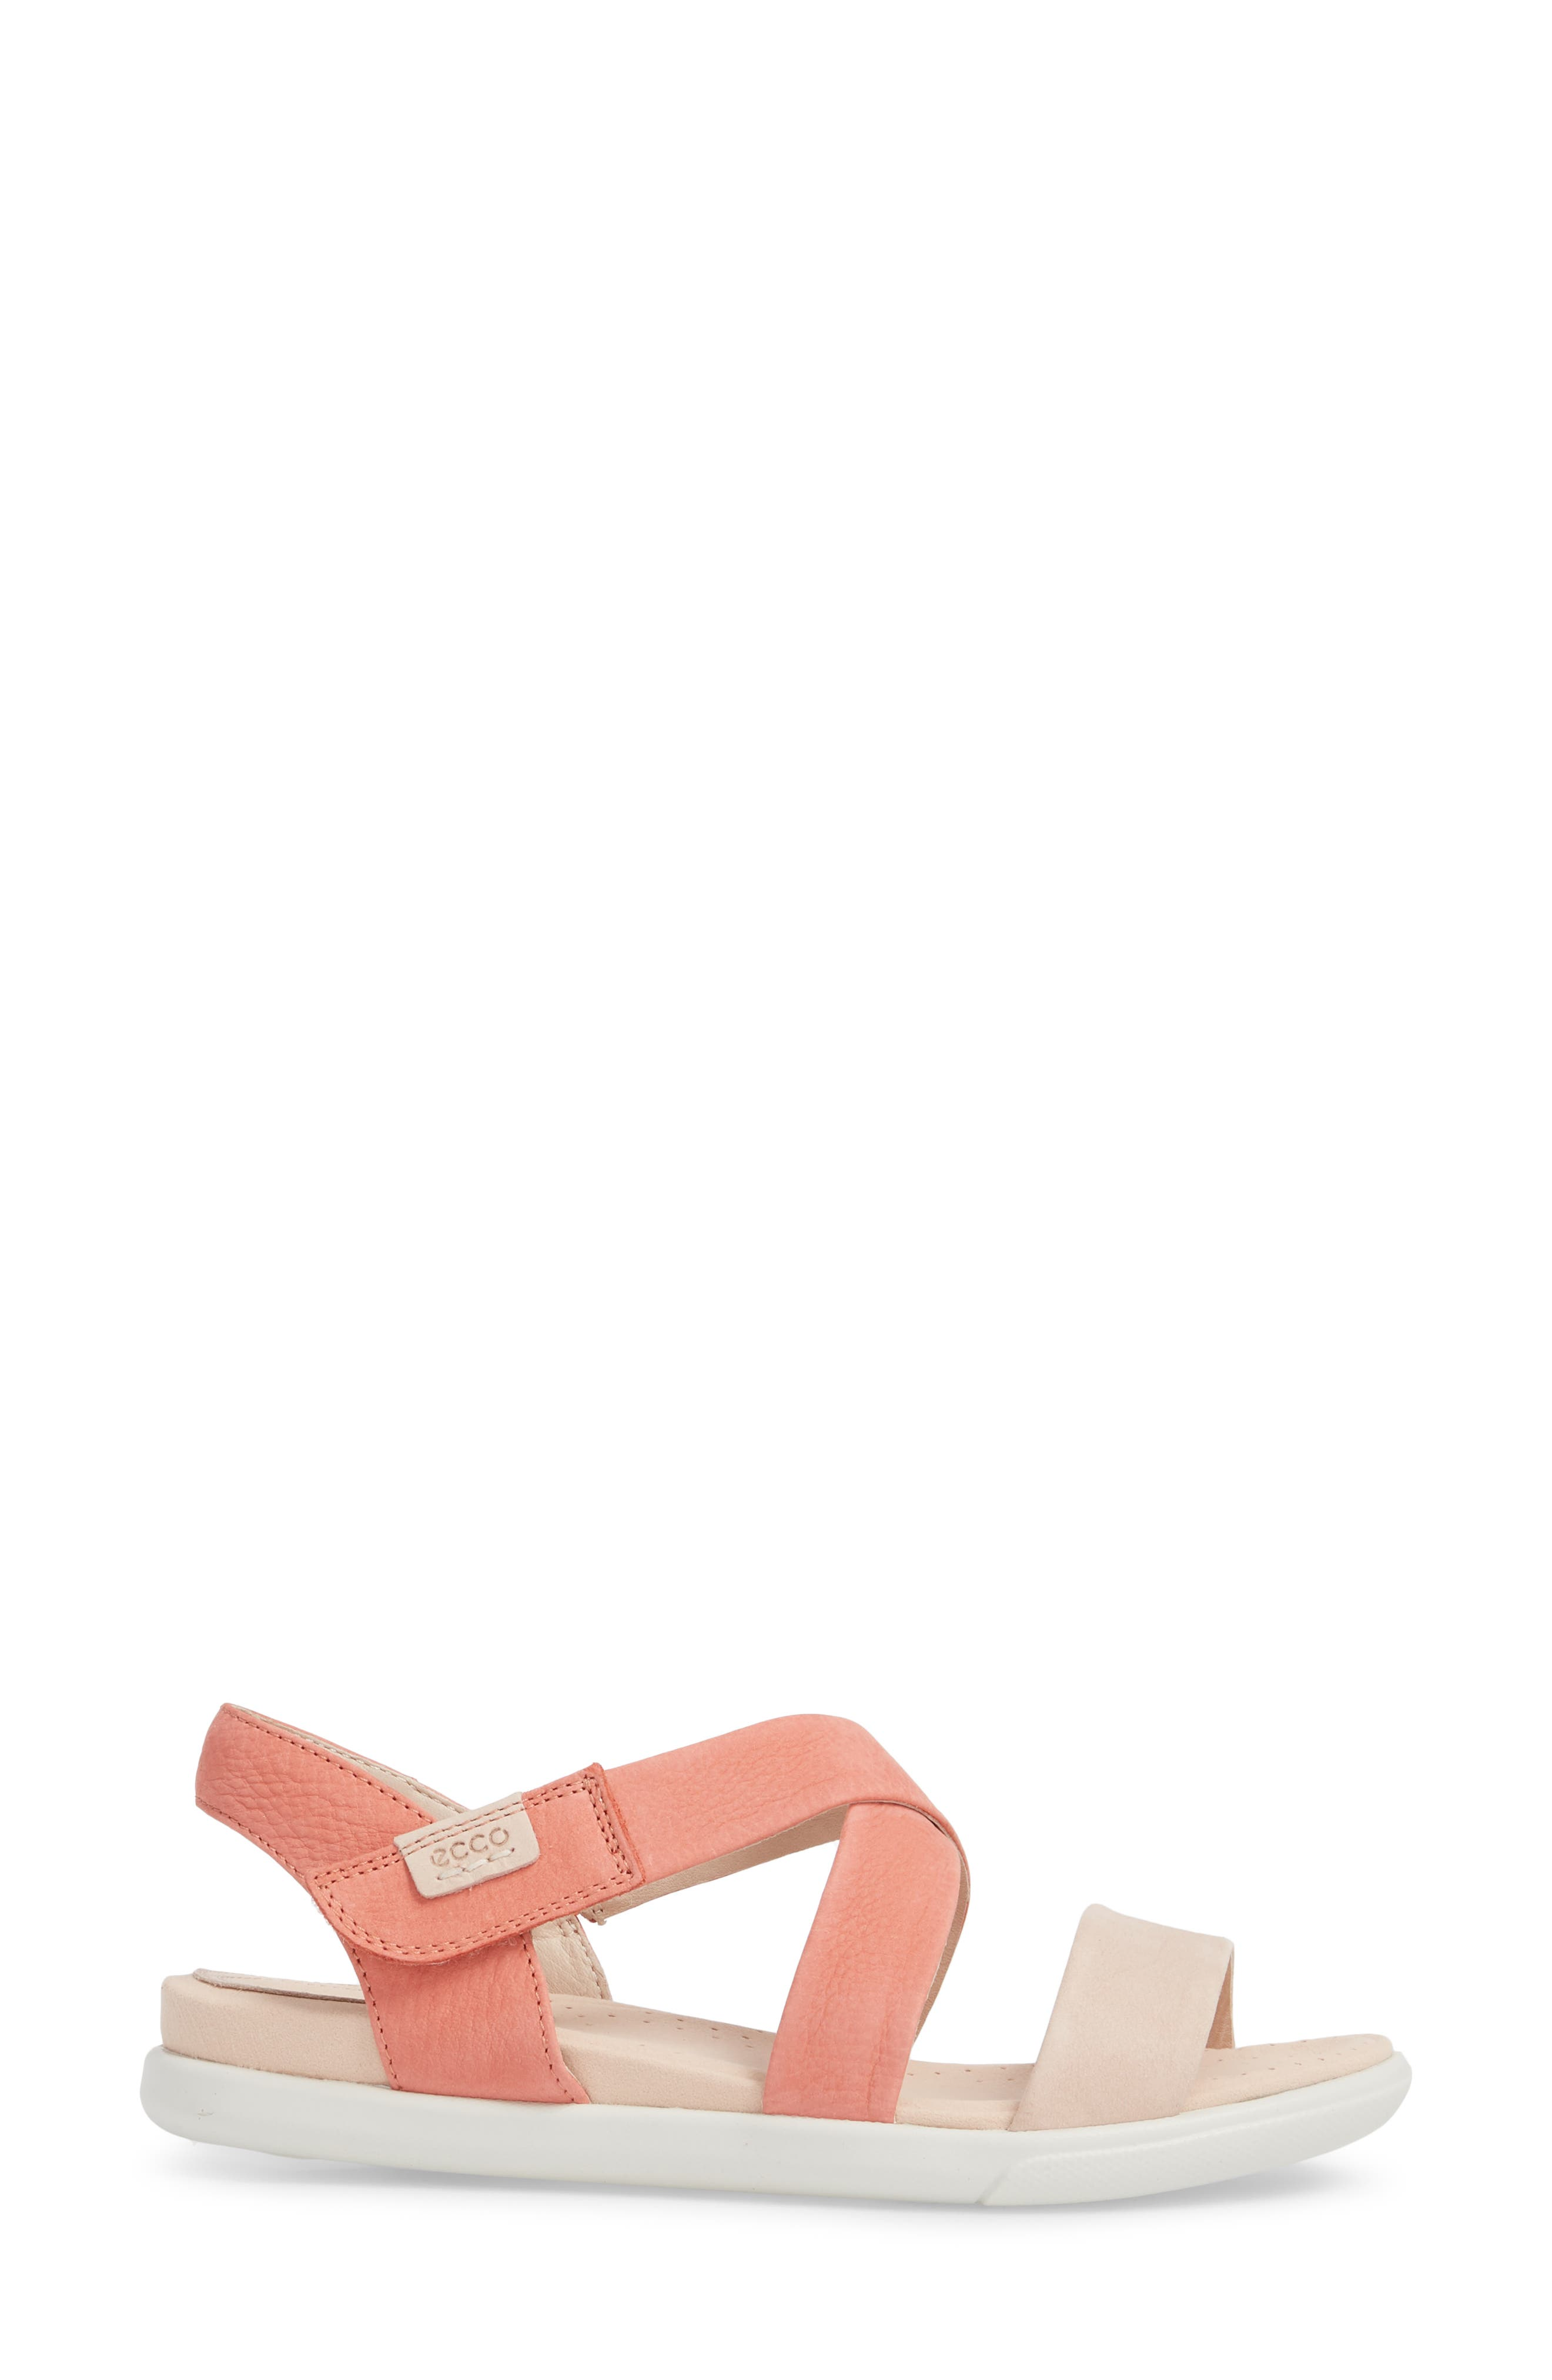 Damara Cross-Strap Sandal,                             Alternate thumbnail 18, color,